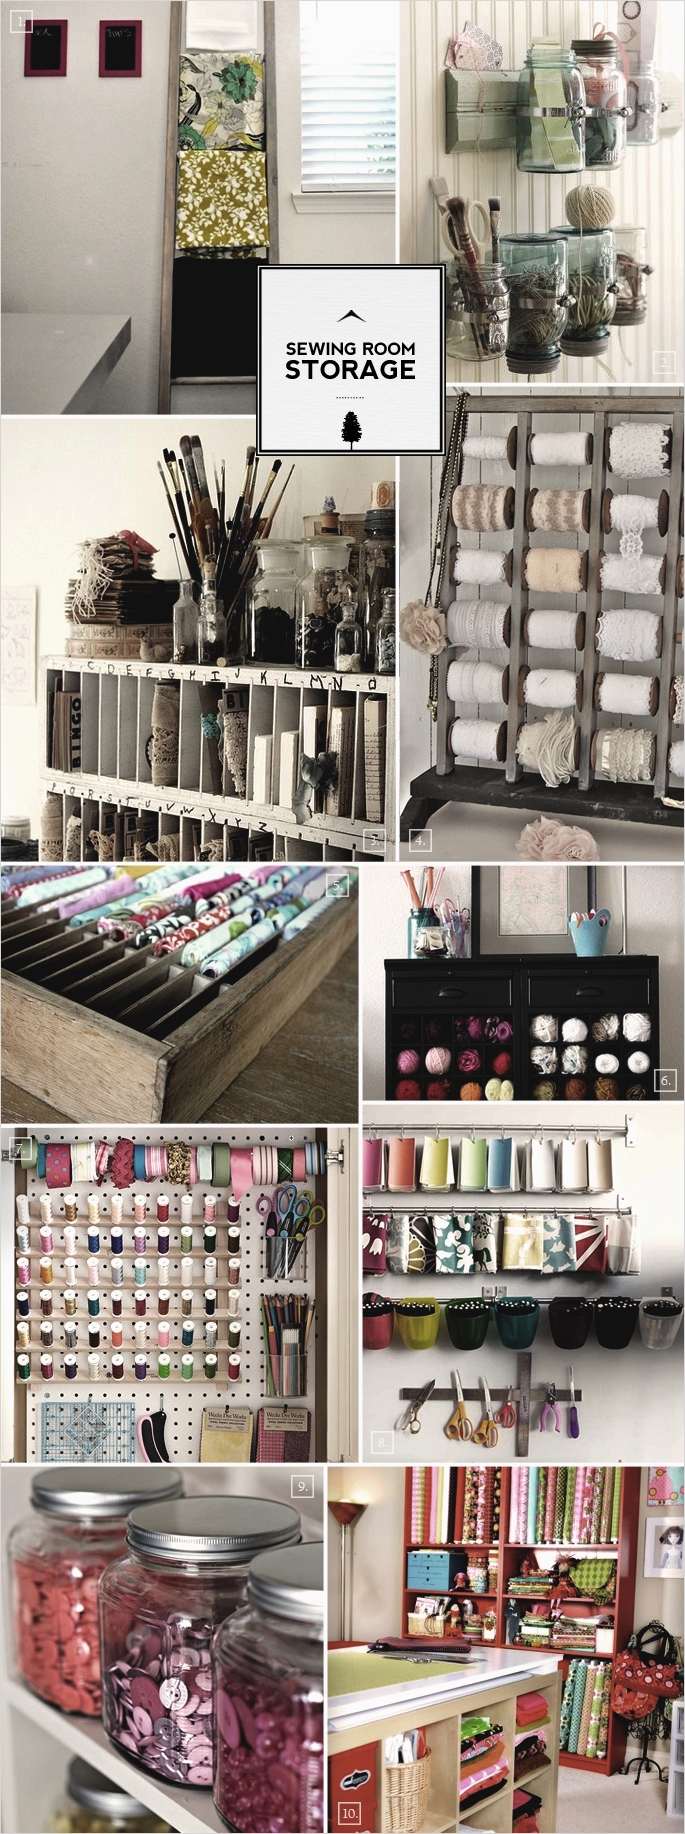 40 Creative Sewing Room Storage Ideas 75 Sewing Room organization Ideas 1